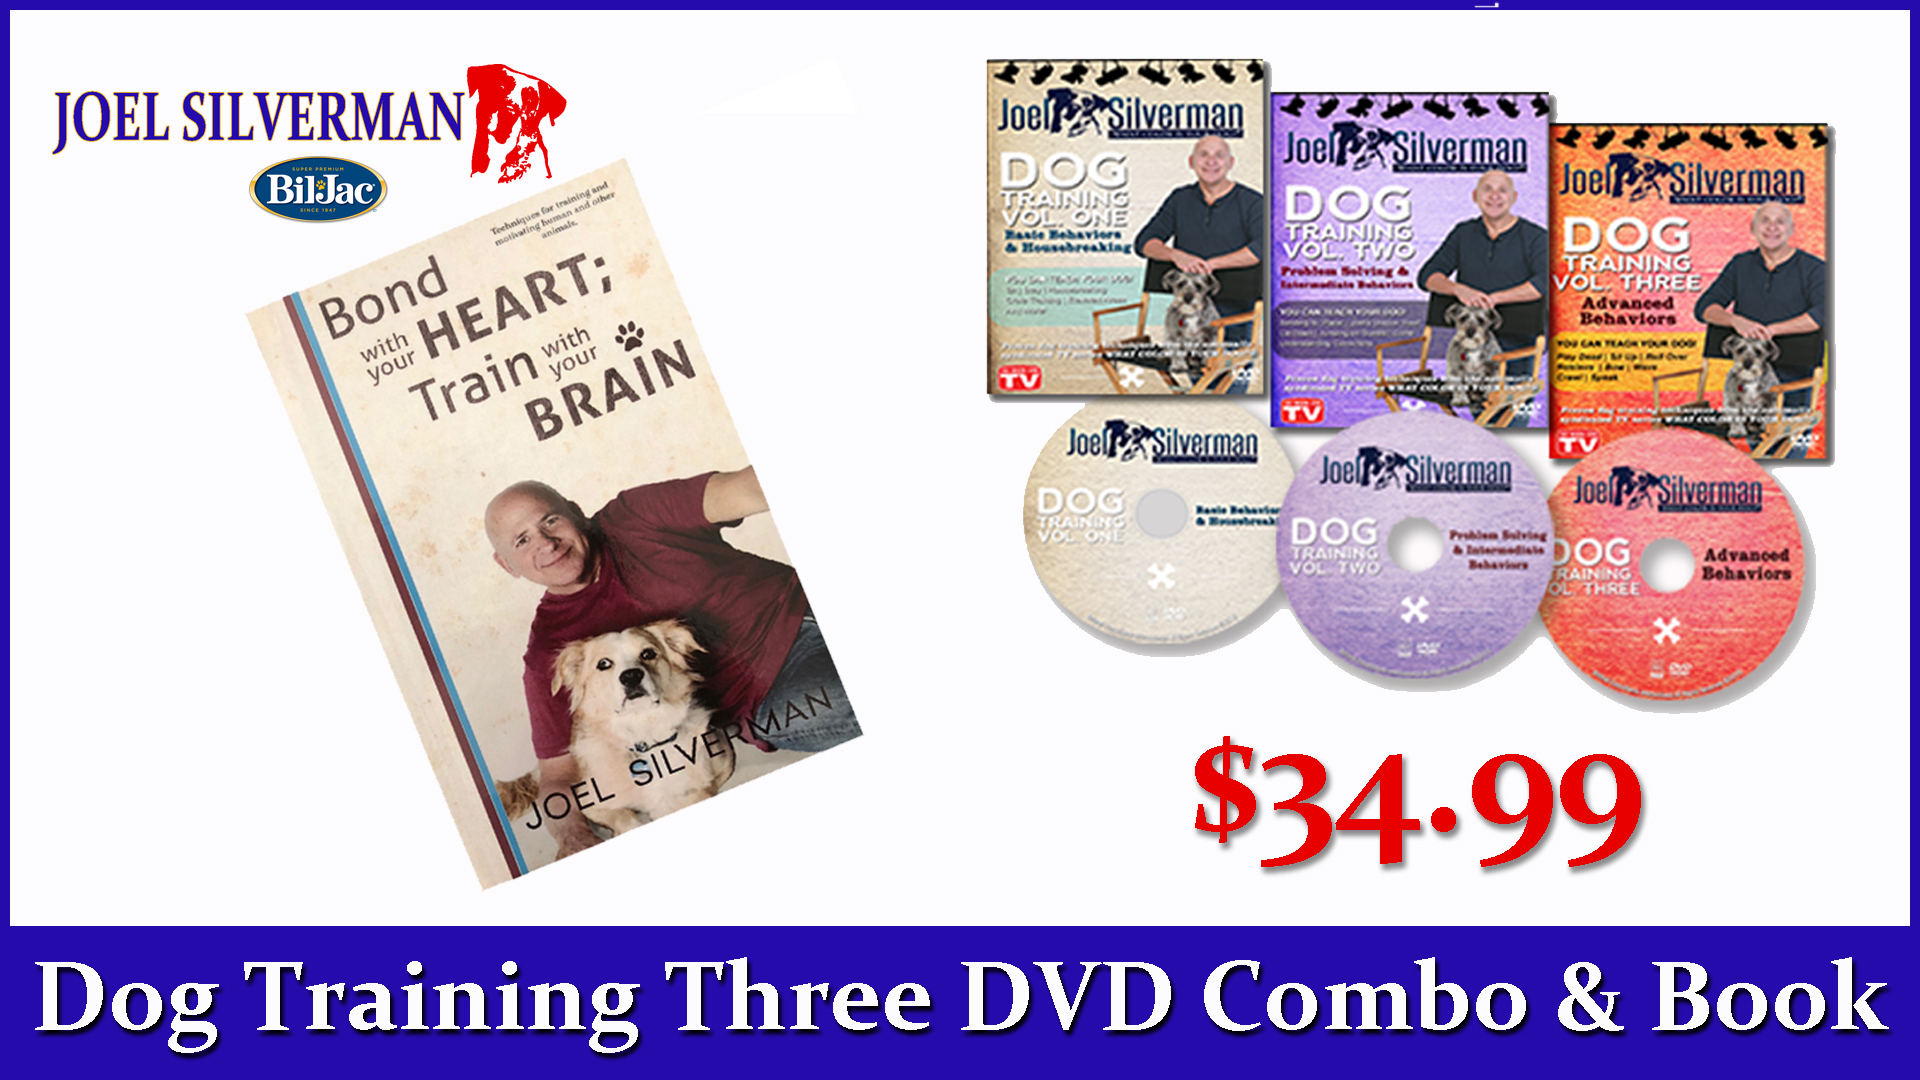 Joel Silverman's 3 DVDs/ Bond With Your Heart … Book